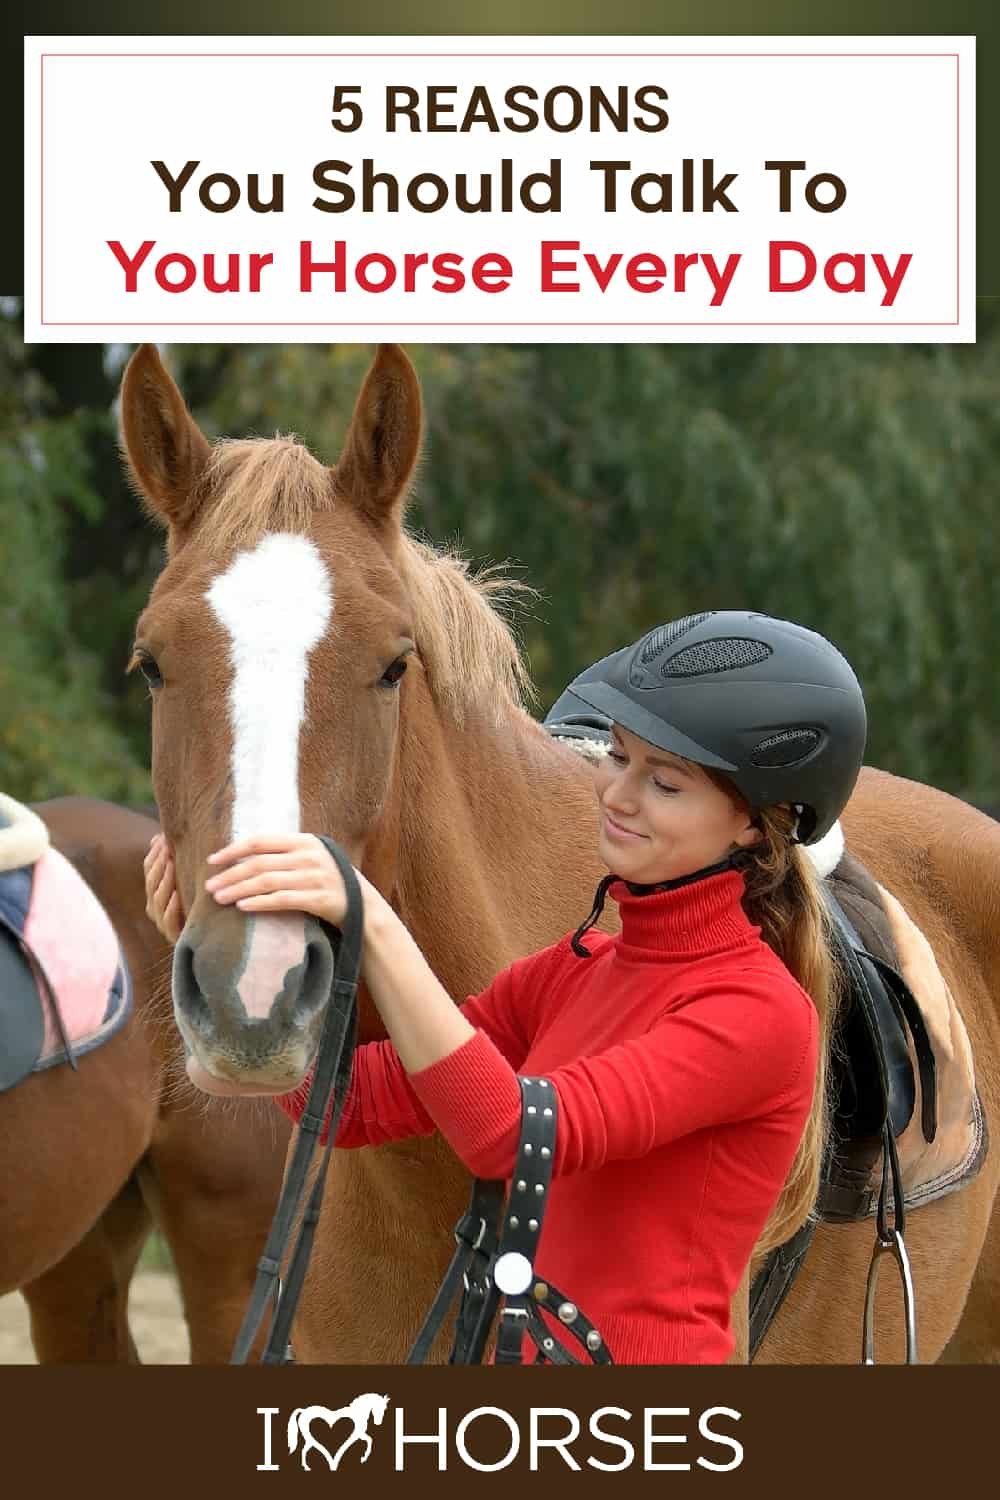 5 Reasons To Talk To Your Horse